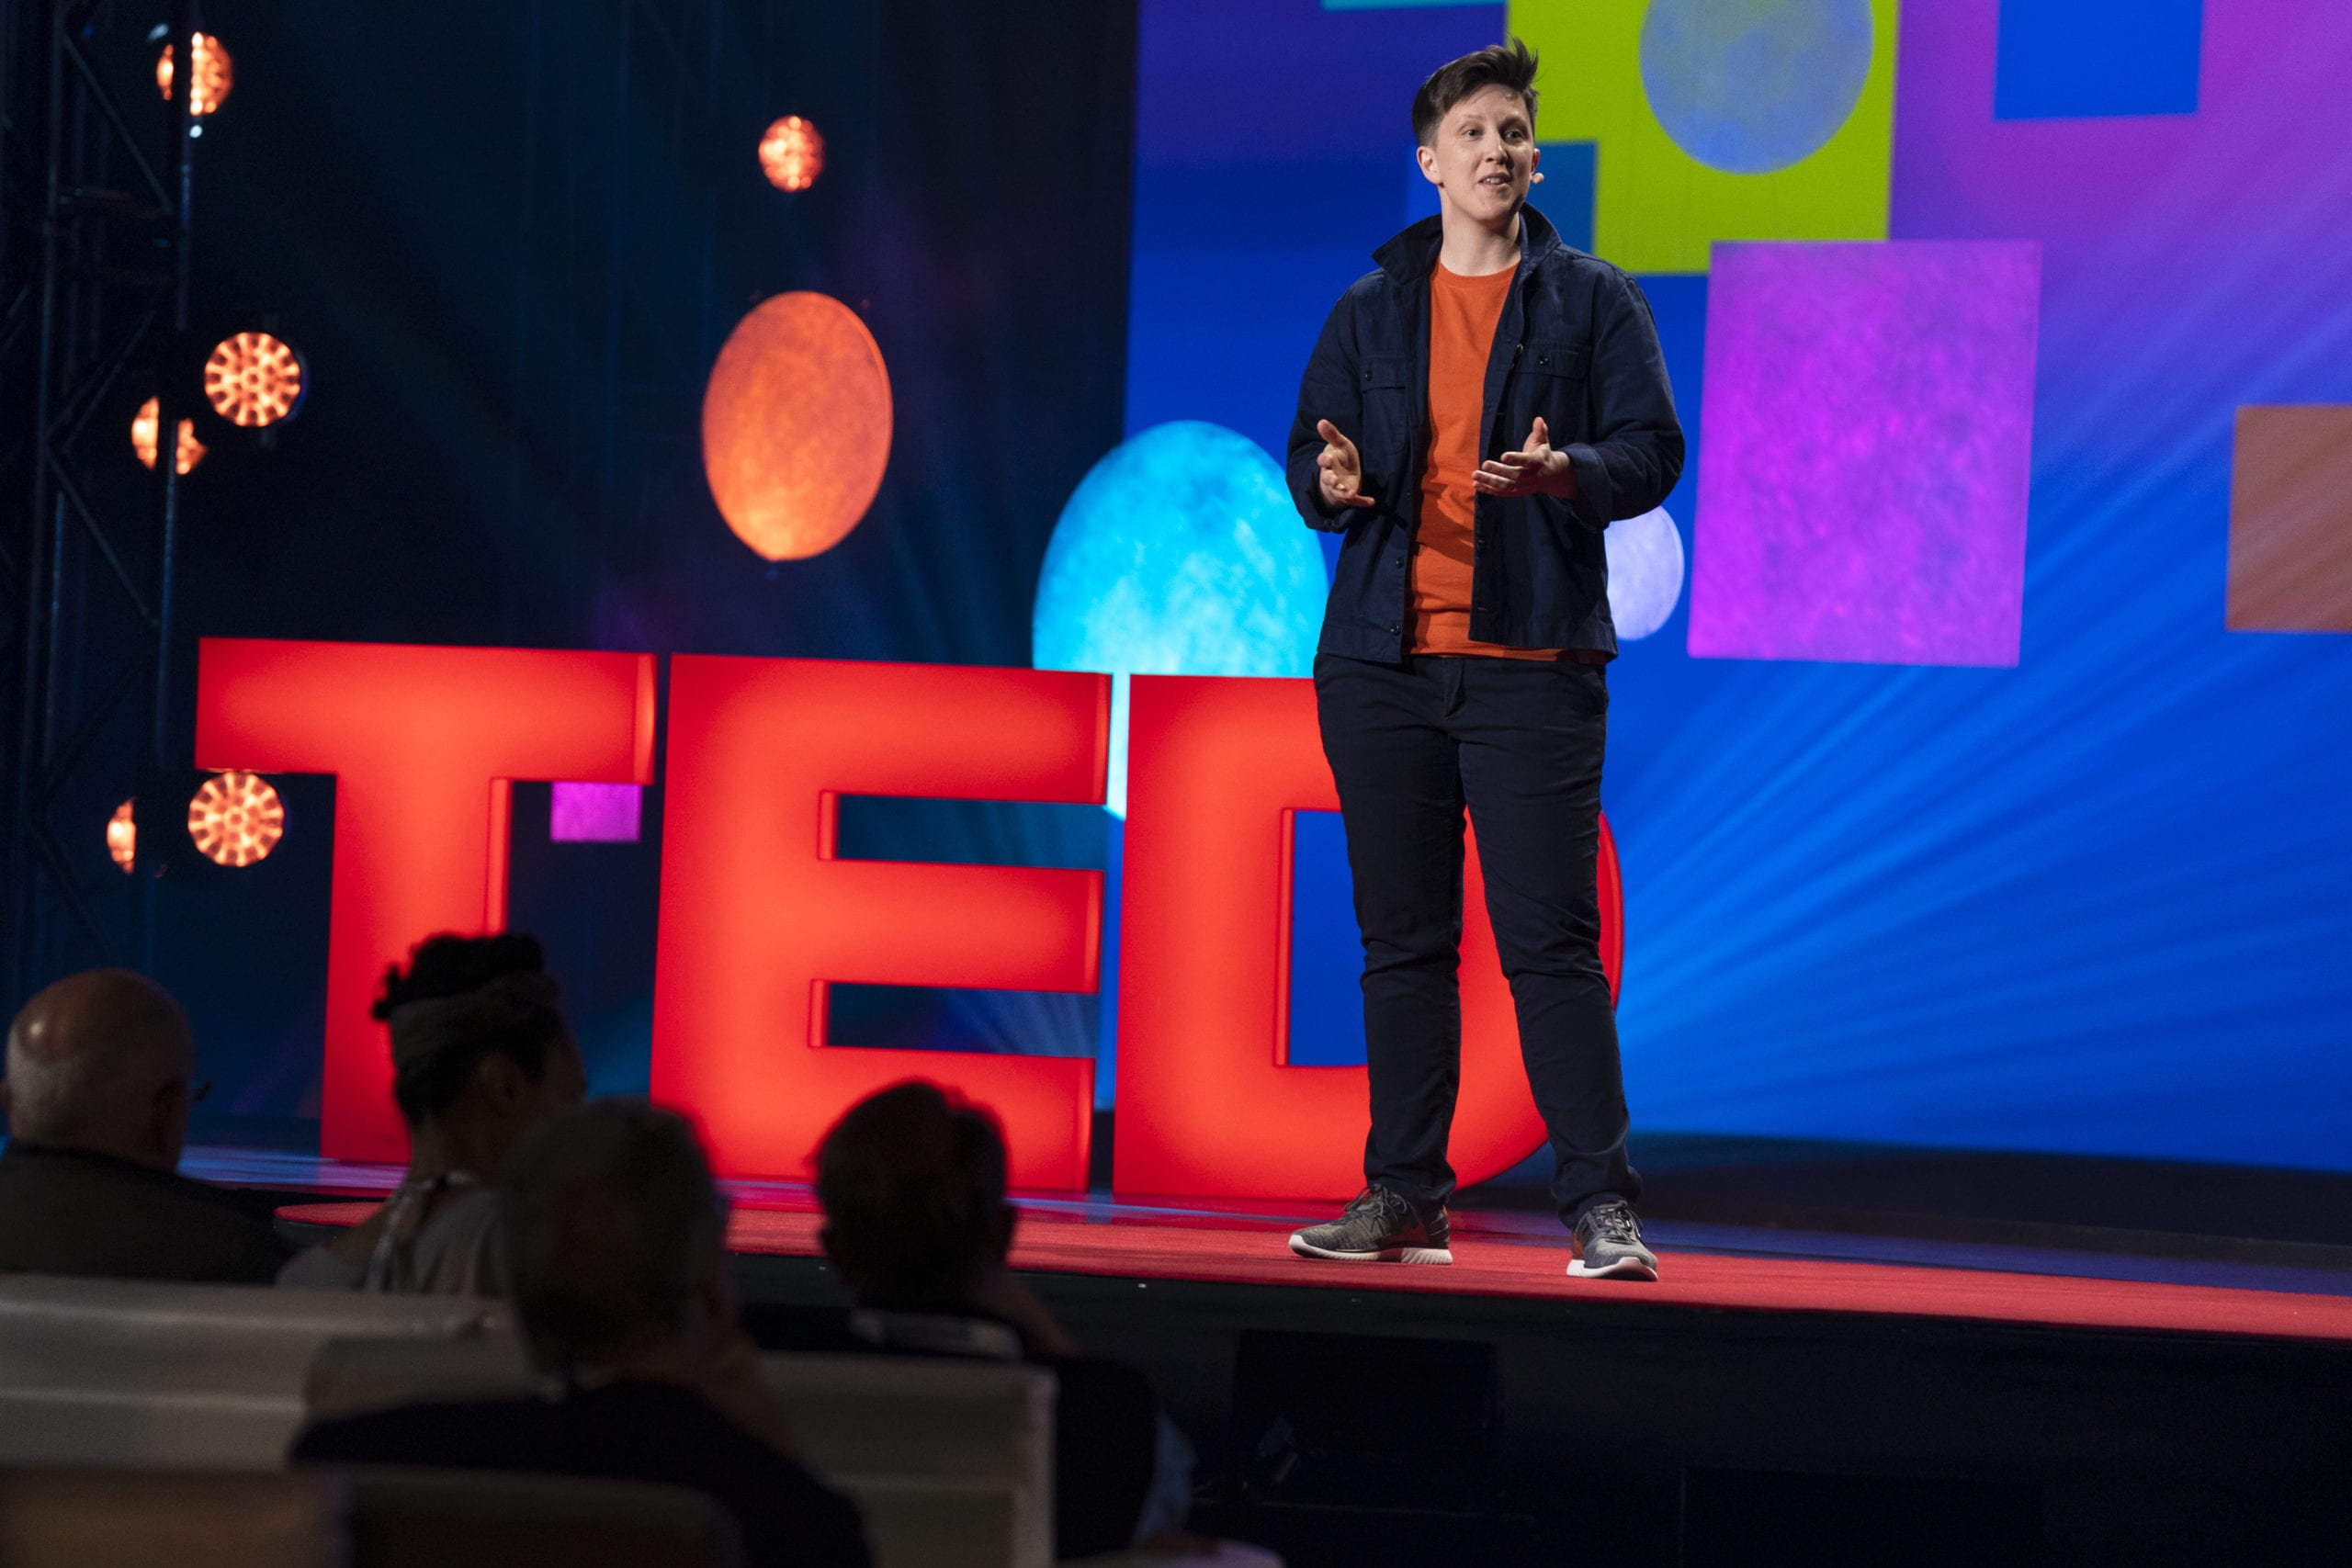 Jess Kutch speaks during Fellows Session at TED2019: Bigger Than Us. April 15 - 19, 2019, Vancouver, BC, Canada. Photo: Dian Lofton / TED